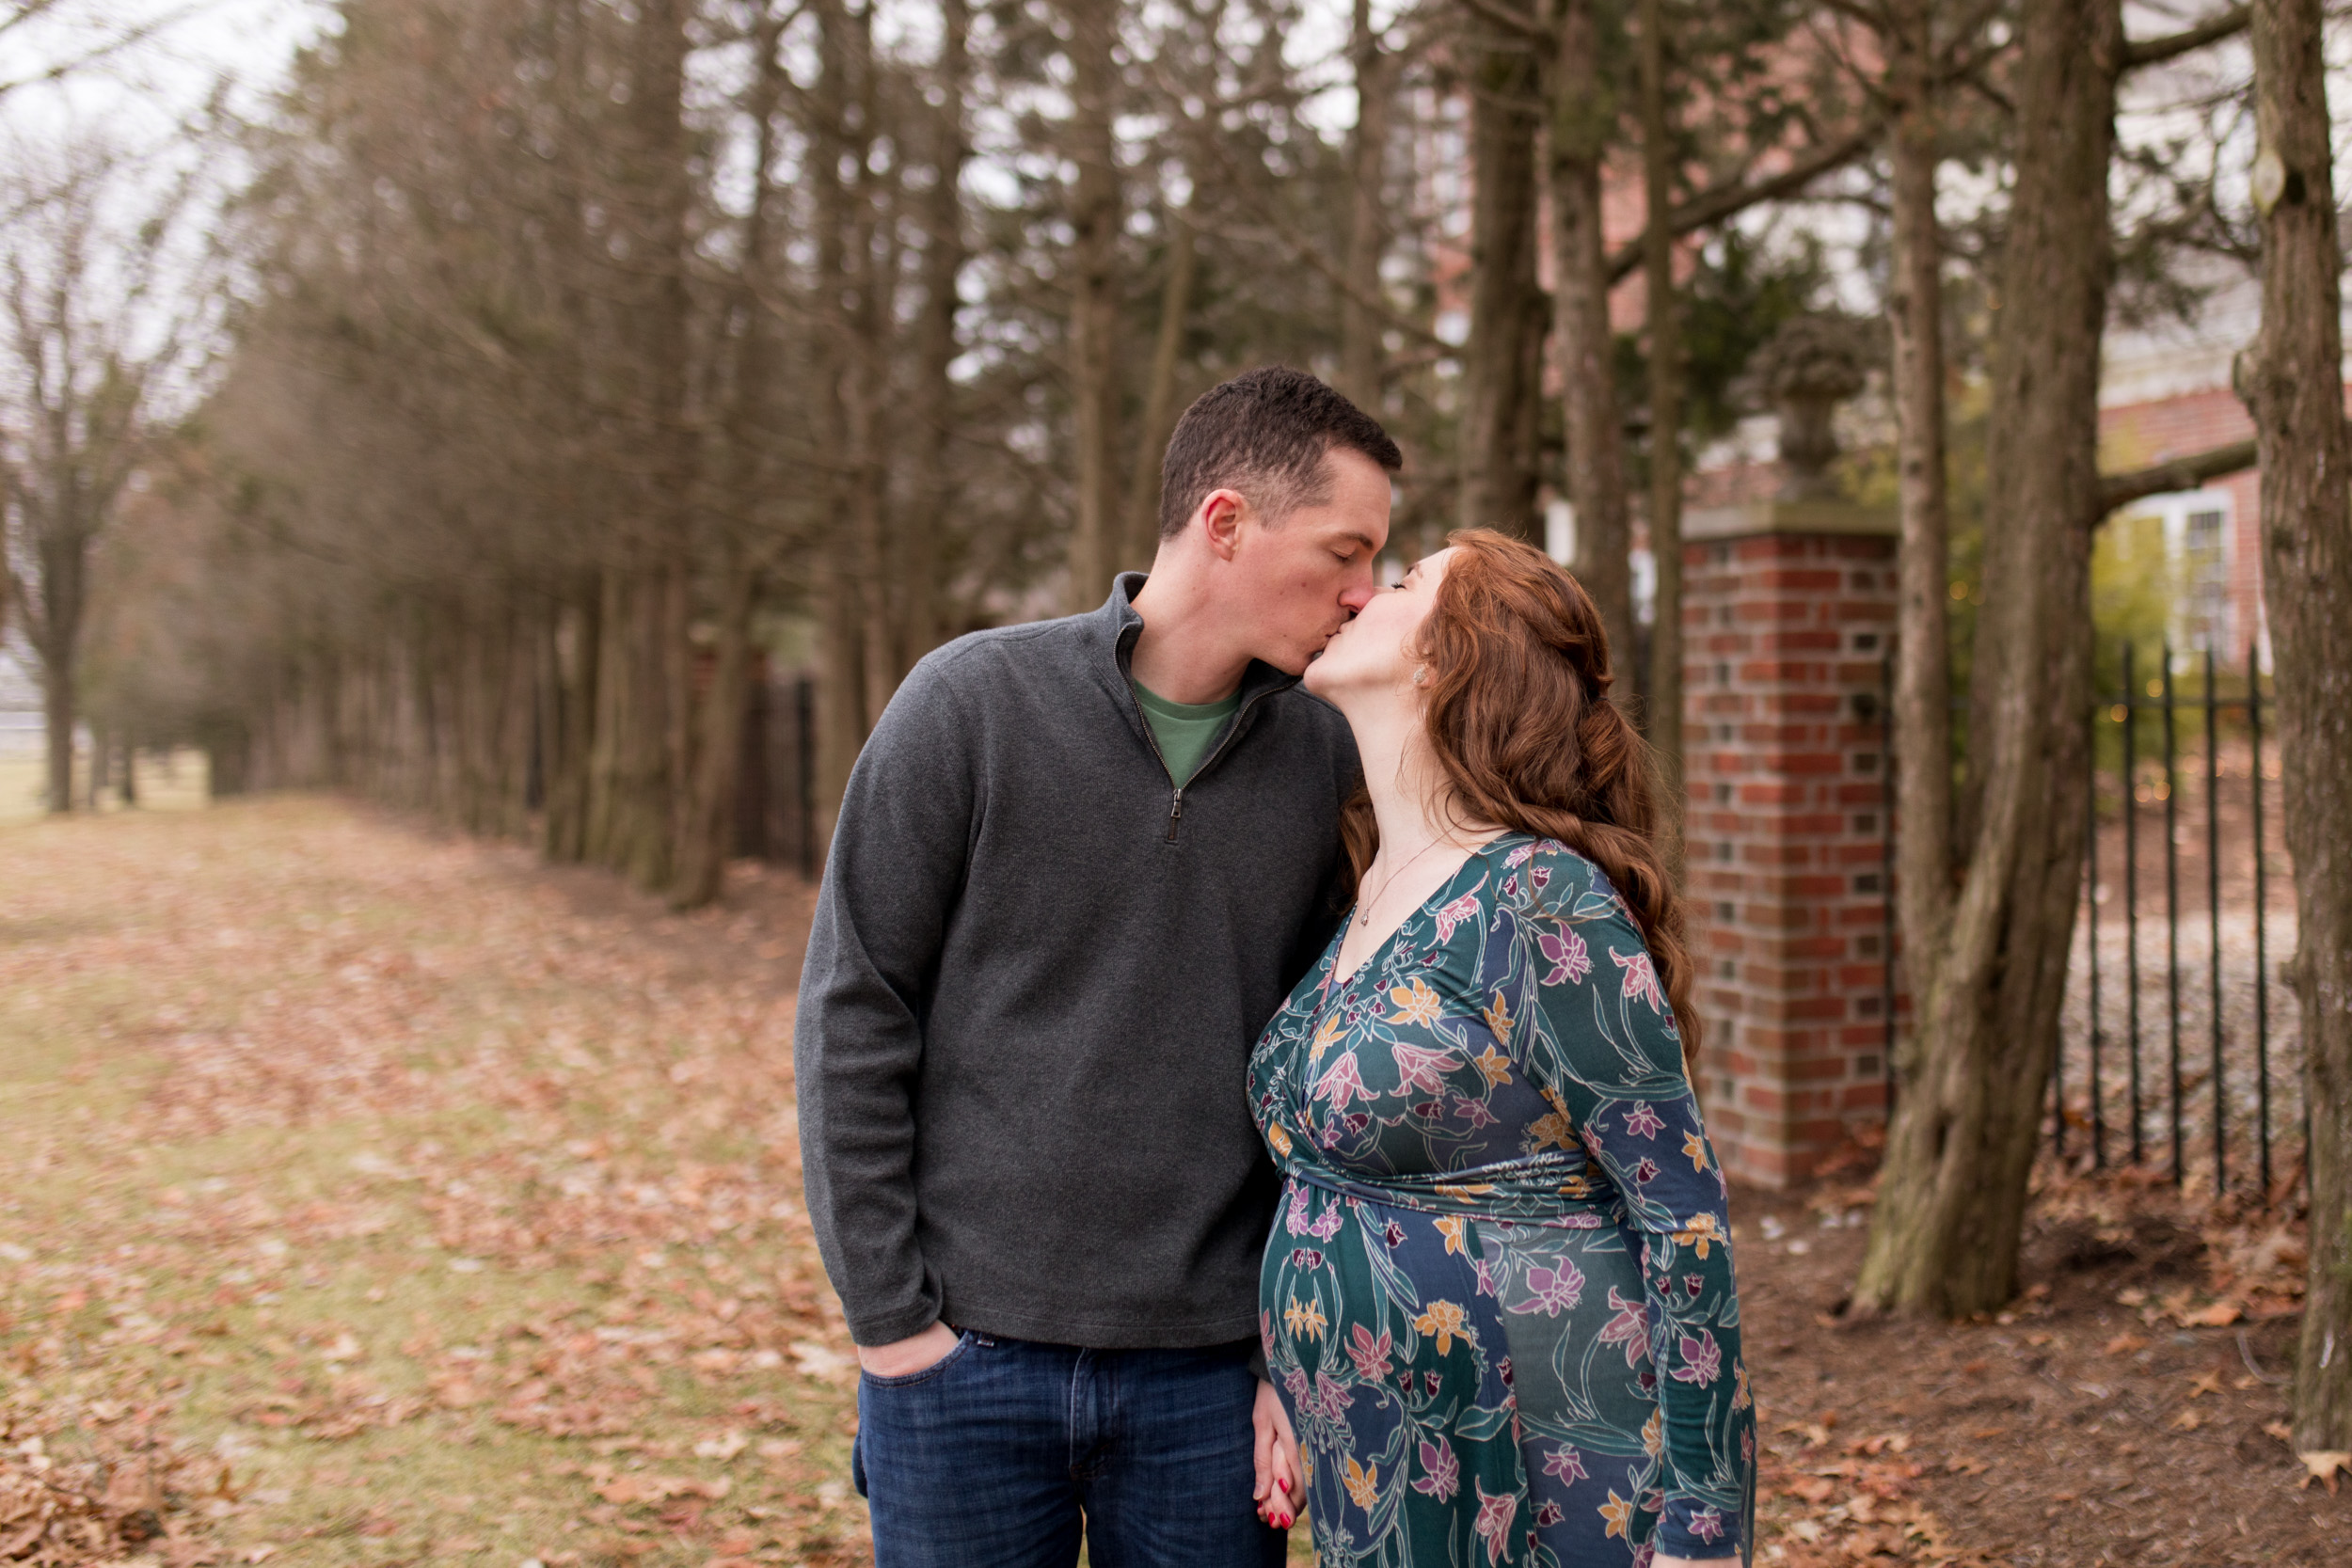 winter maternity session at Coxhall Gardens in Carmel